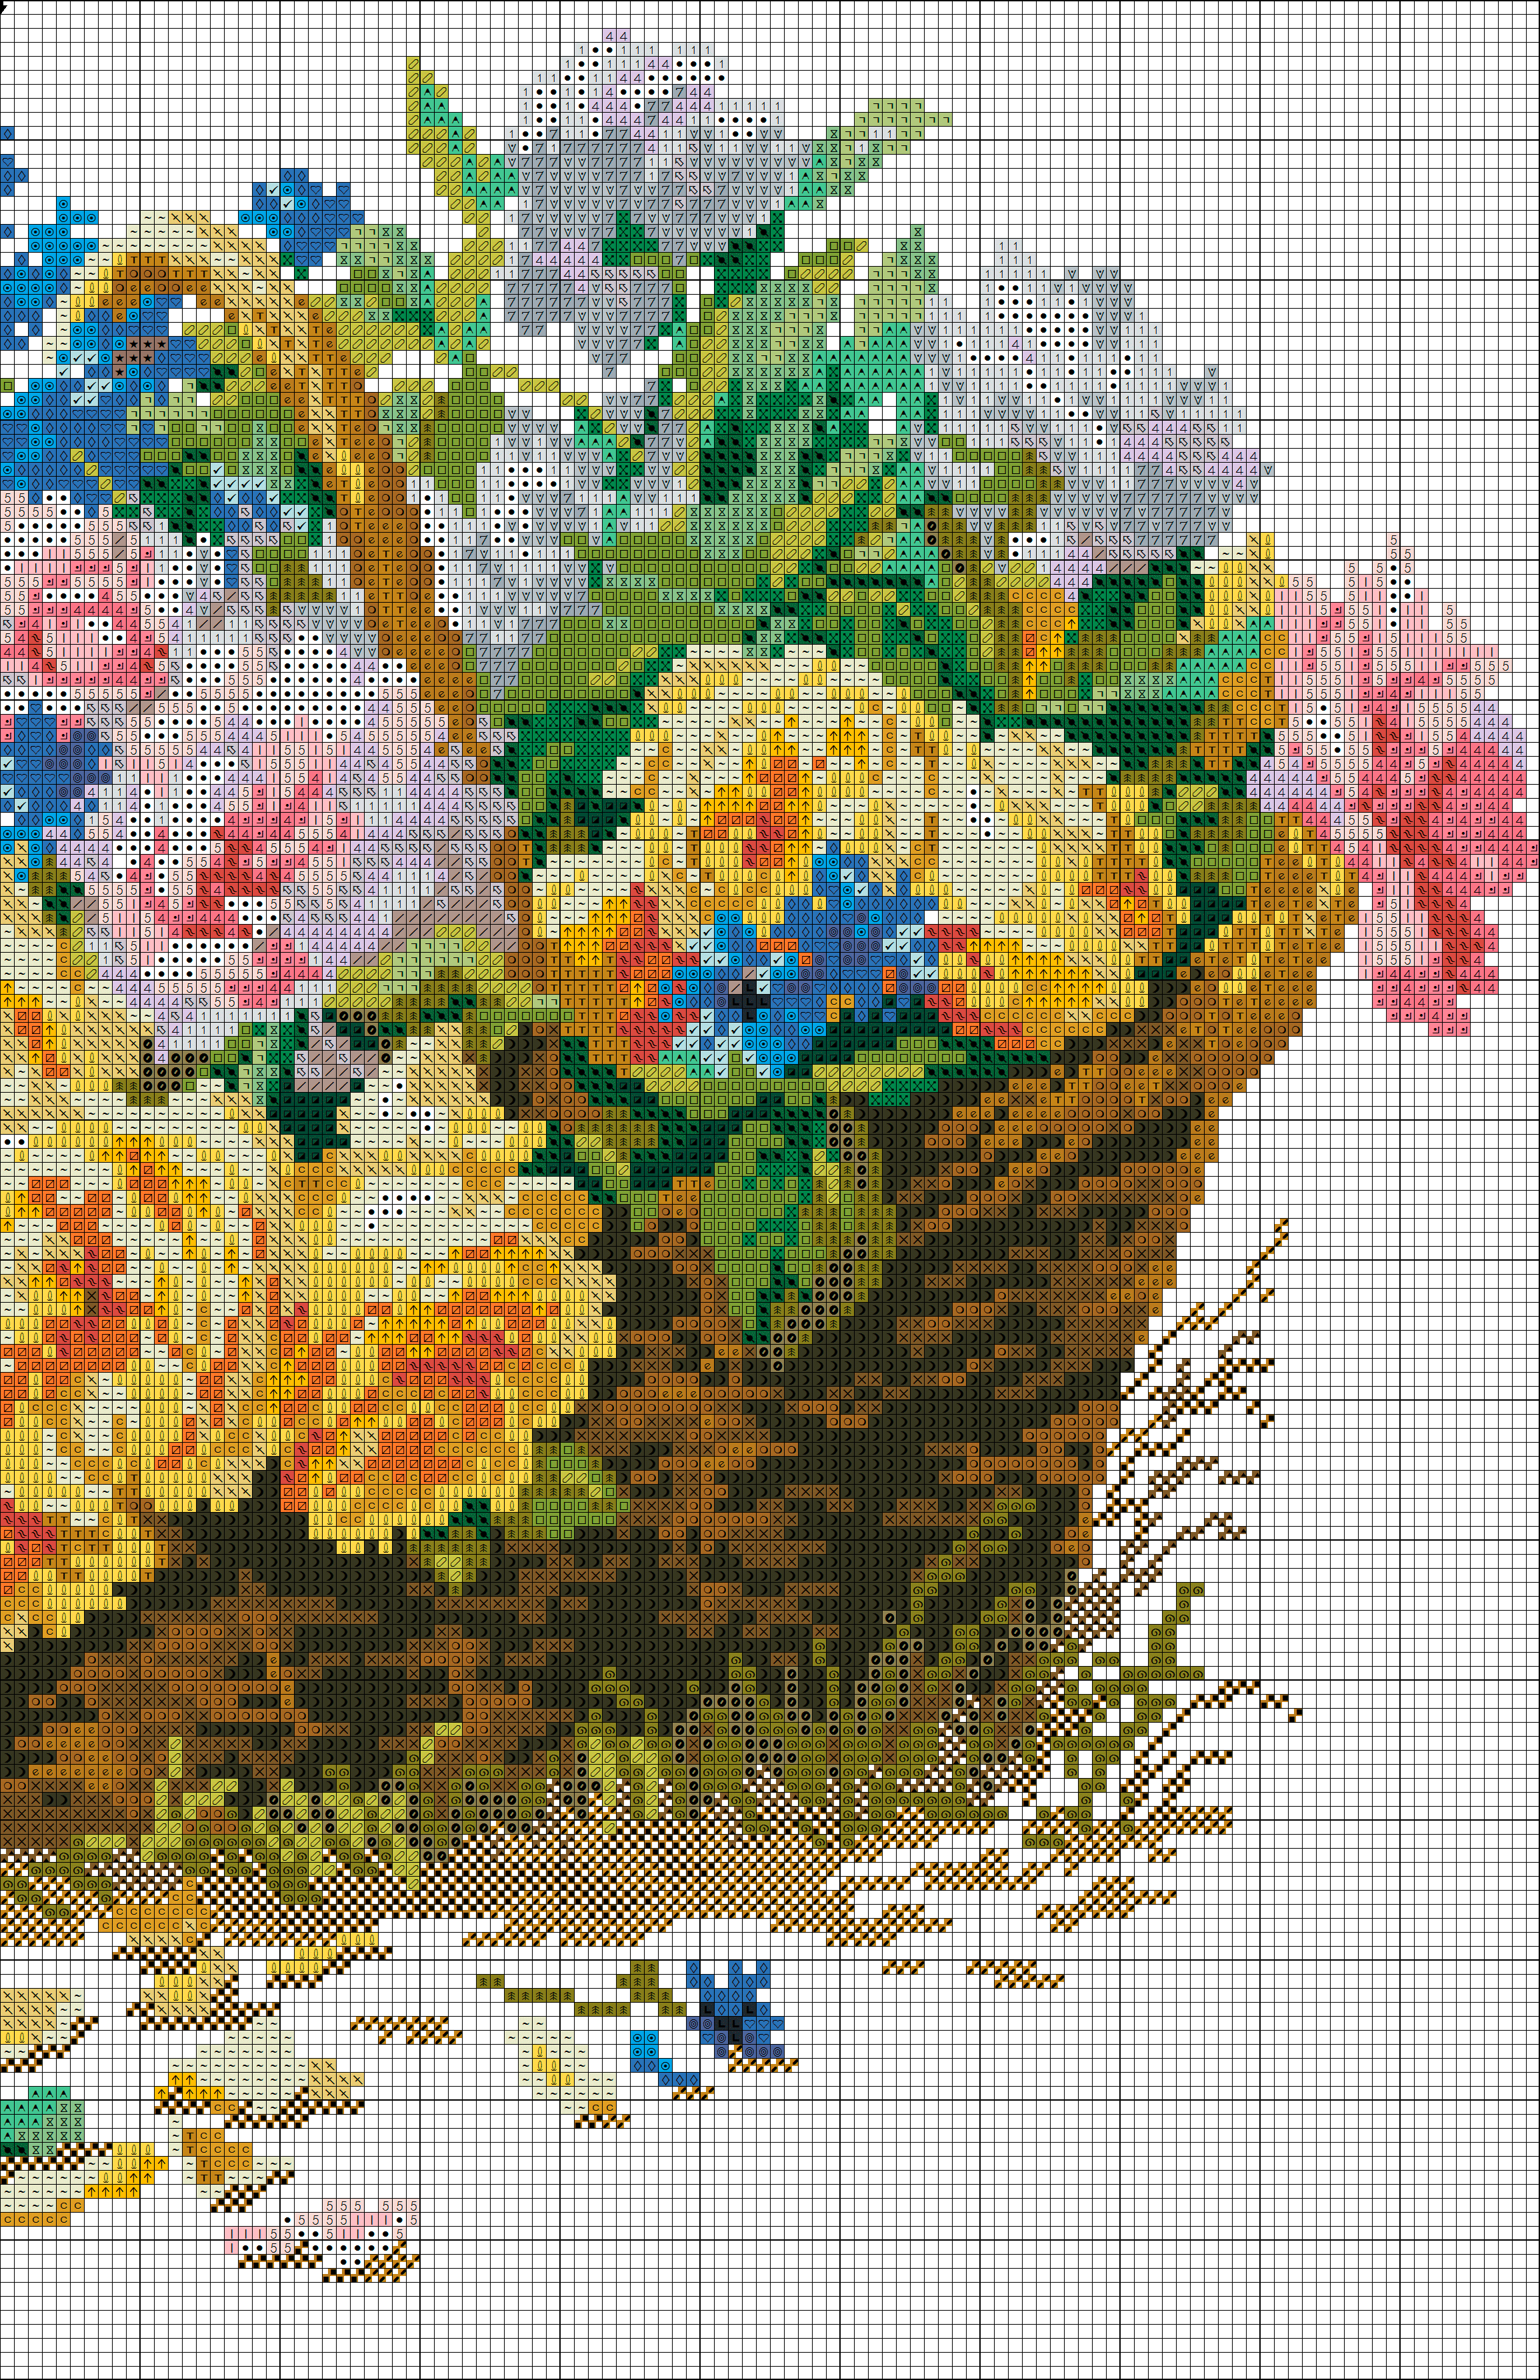 cross stitch pattern roses and cornflowers (2)